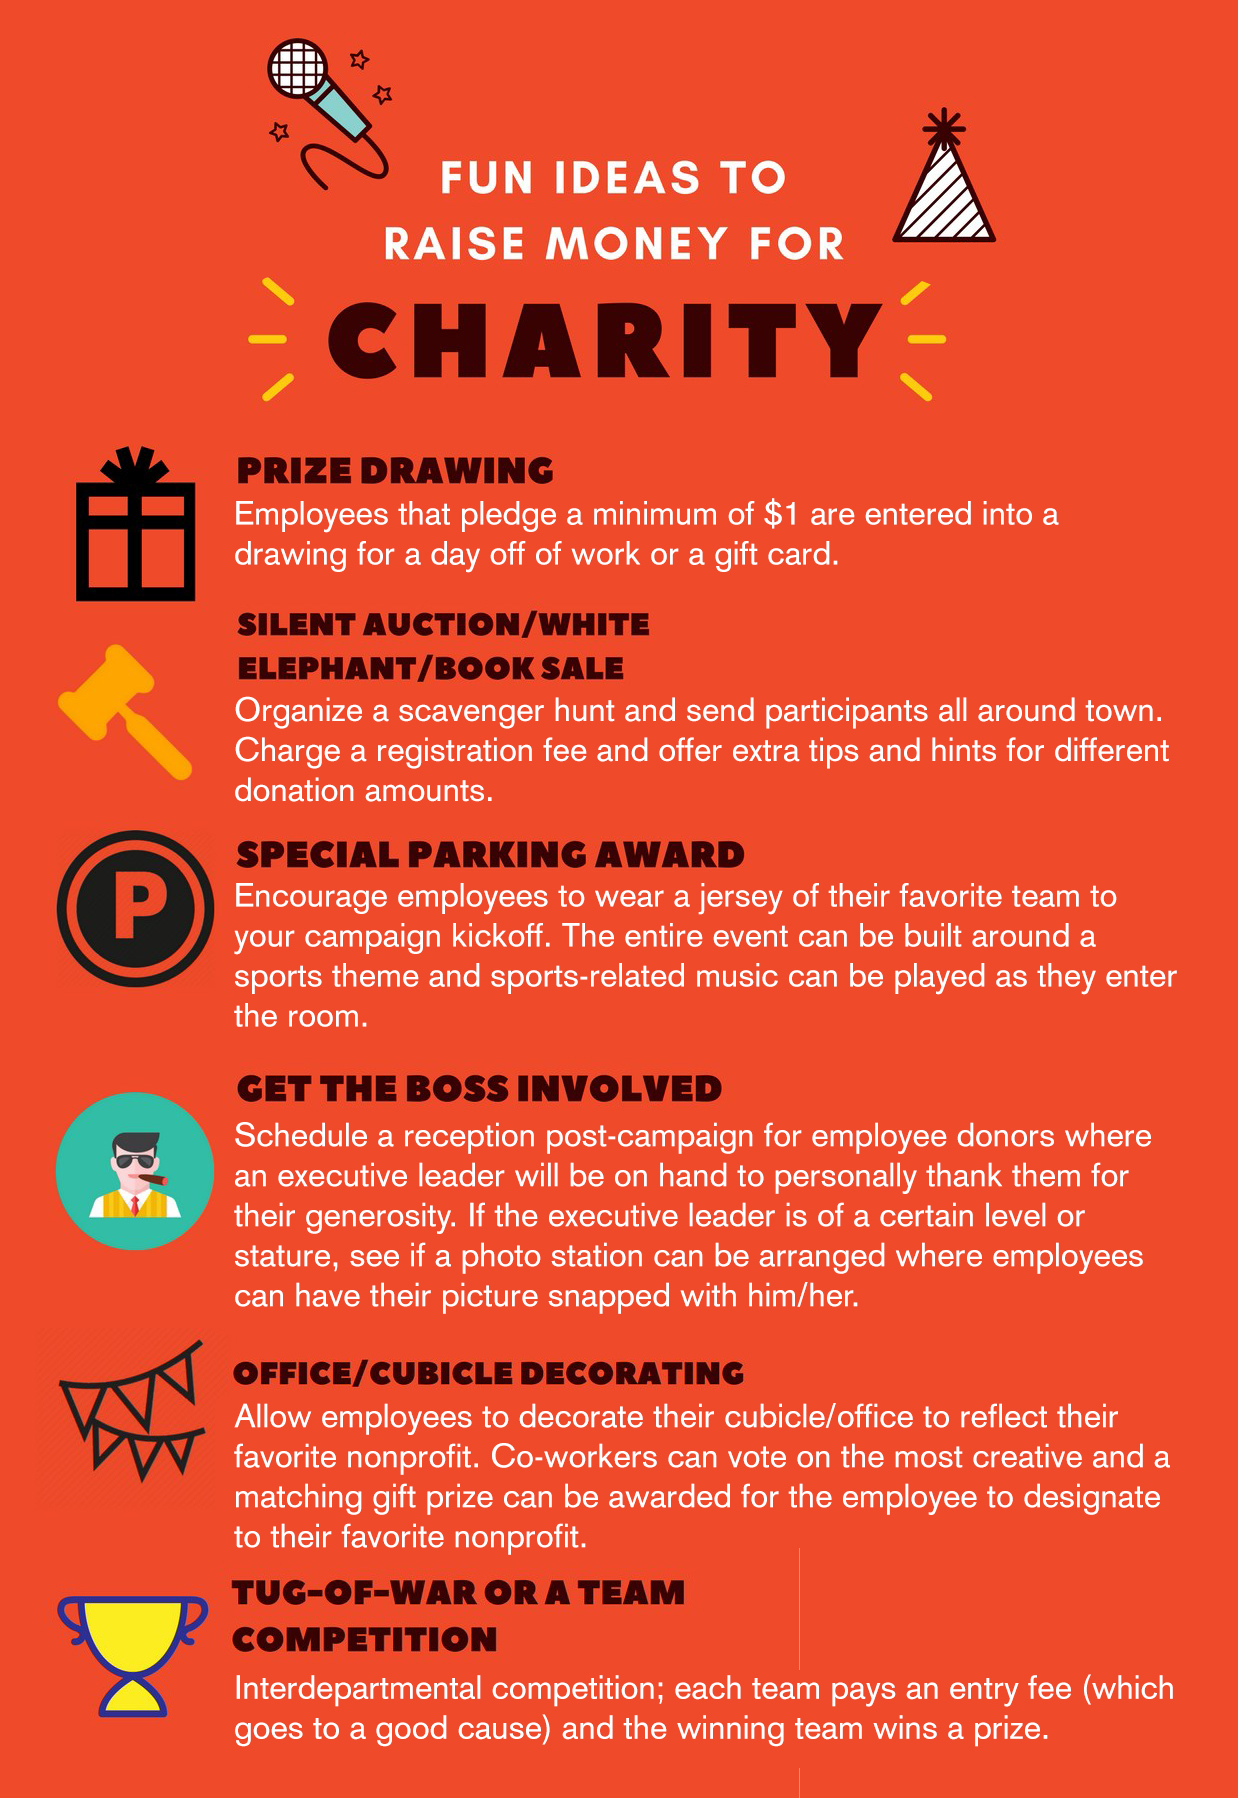 fun ideas for engaging employees and raising money for charity